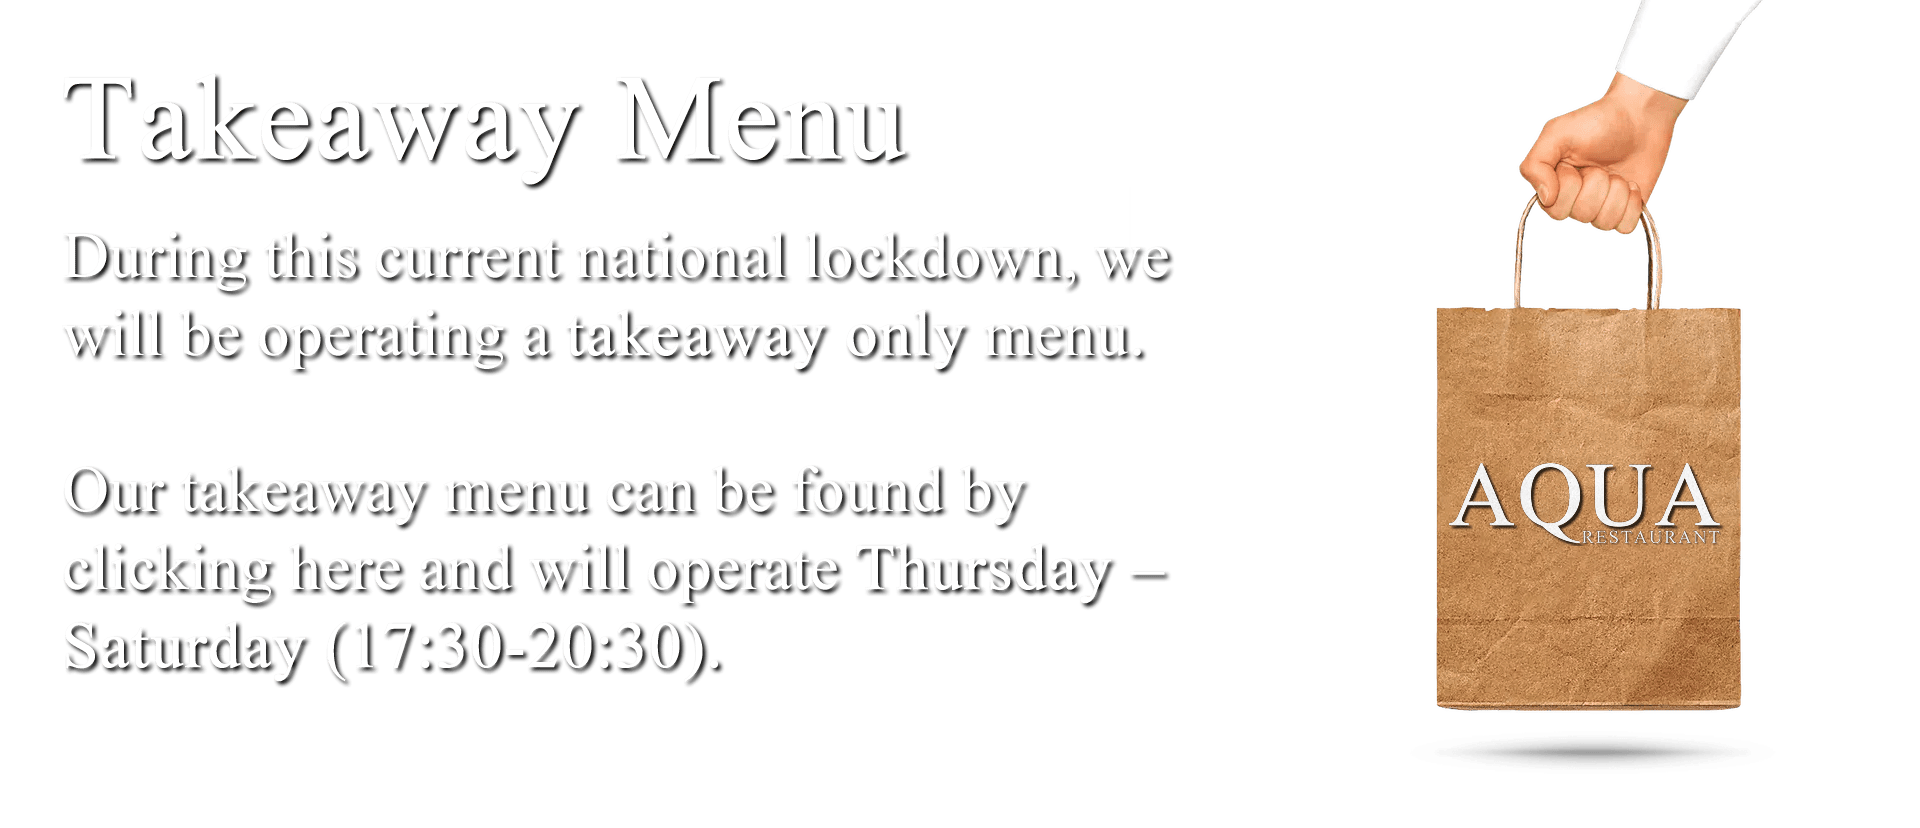 During this current national lockdown, we will be operating a takeaway only menu. Our takeaway menu can be found by clicking here and will operate Thursday – Saturday (17:30-20:30).